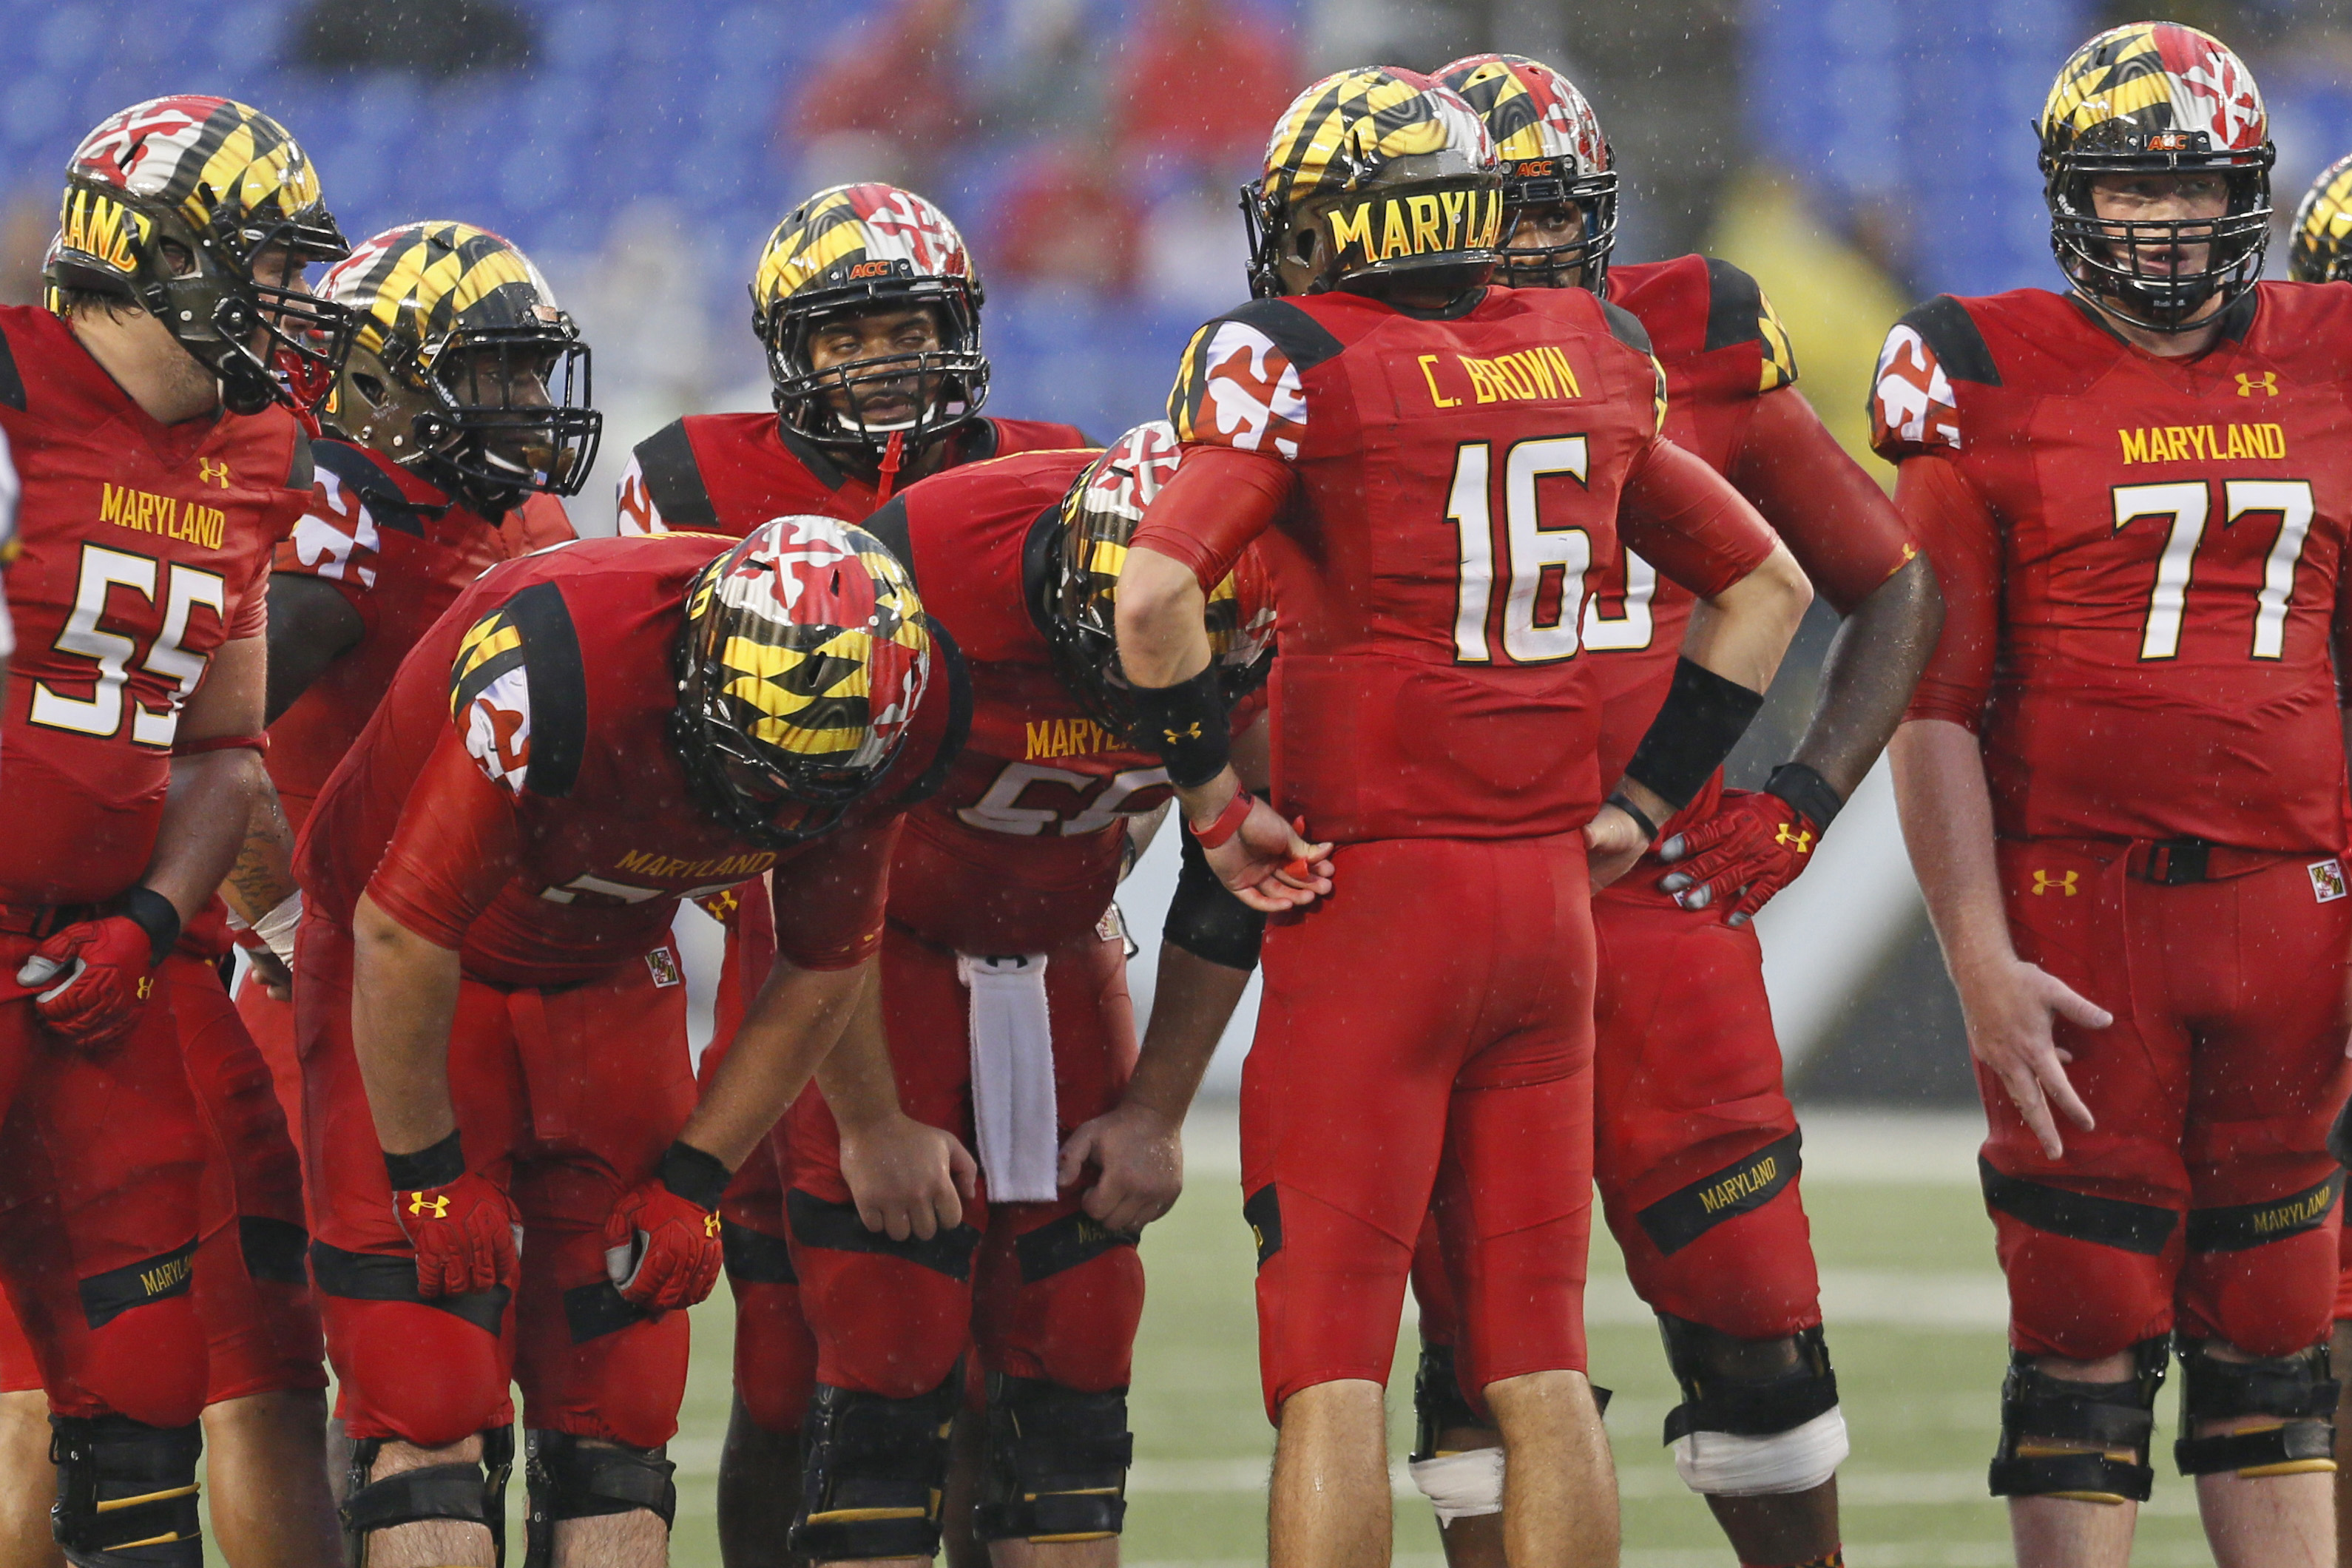 Sep 21, 2013; Baltimore, MD, USA; Maryland Terrapins quarterback CJ Brown (16) leads the offensive huddle during the game against the West Virginia Mountaineers at M&T Bank Stadium. (Mitch Stringer-USA TODAY Sports)